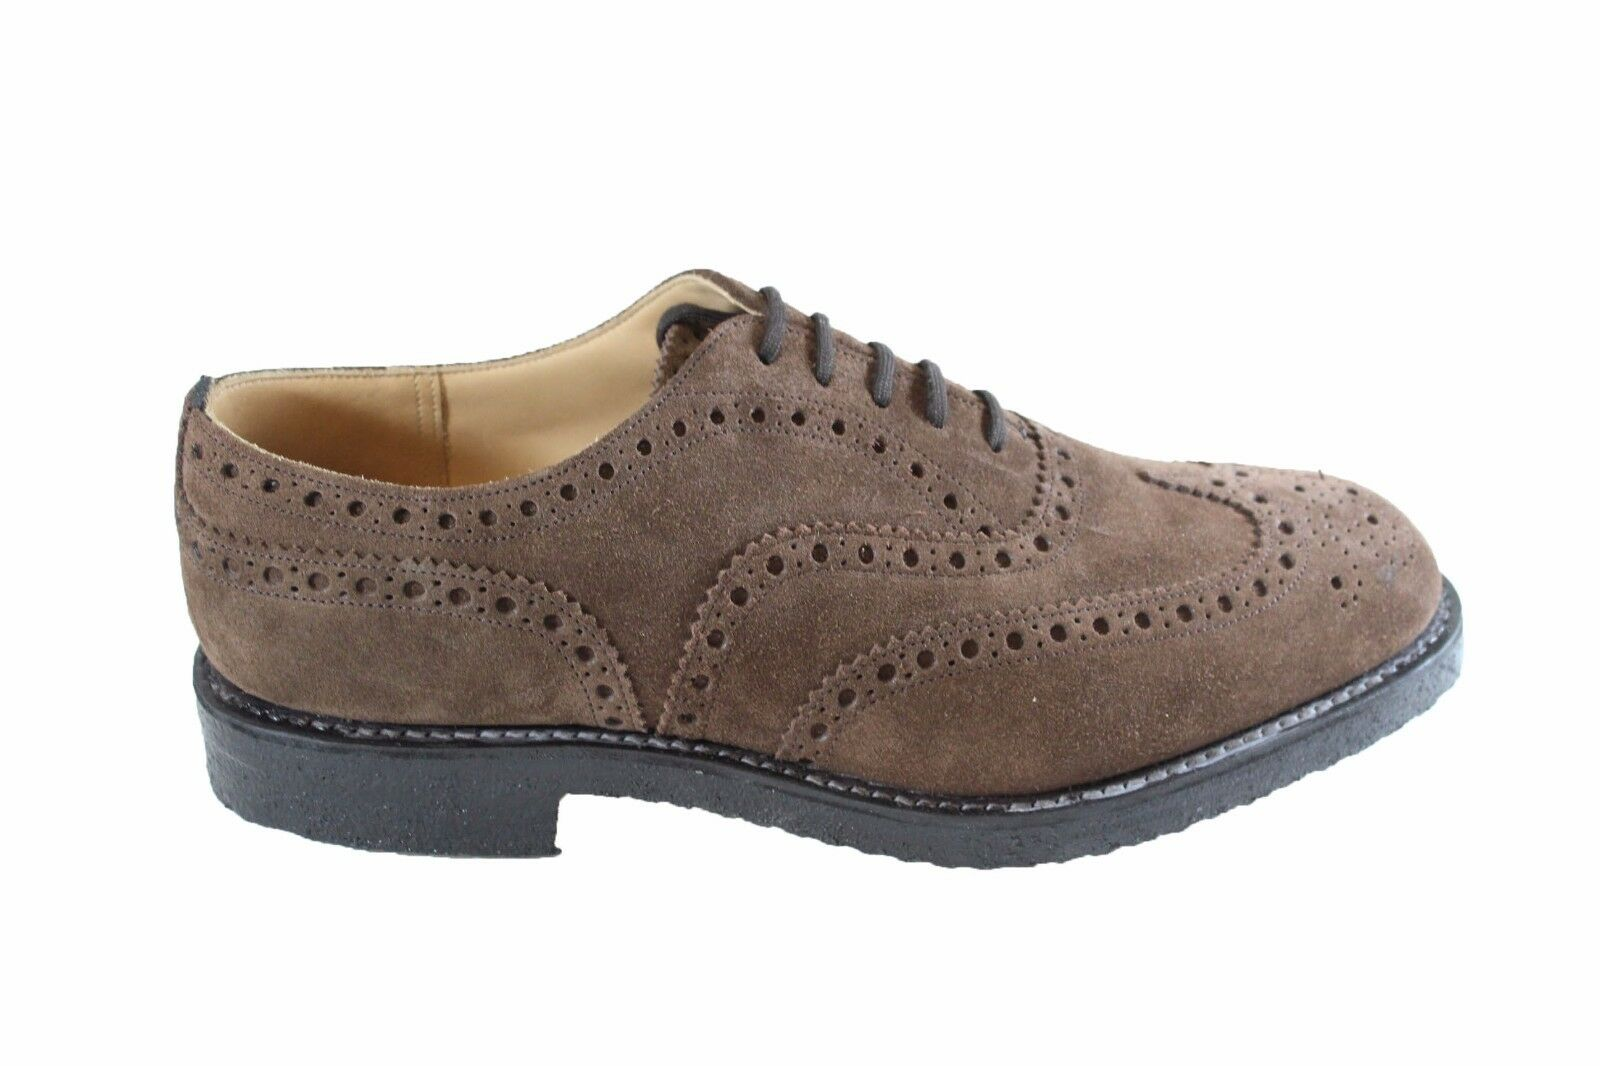 church's Fairfield Sigar Biber Veloursleder brogue stringata Leder Kalbfleisch